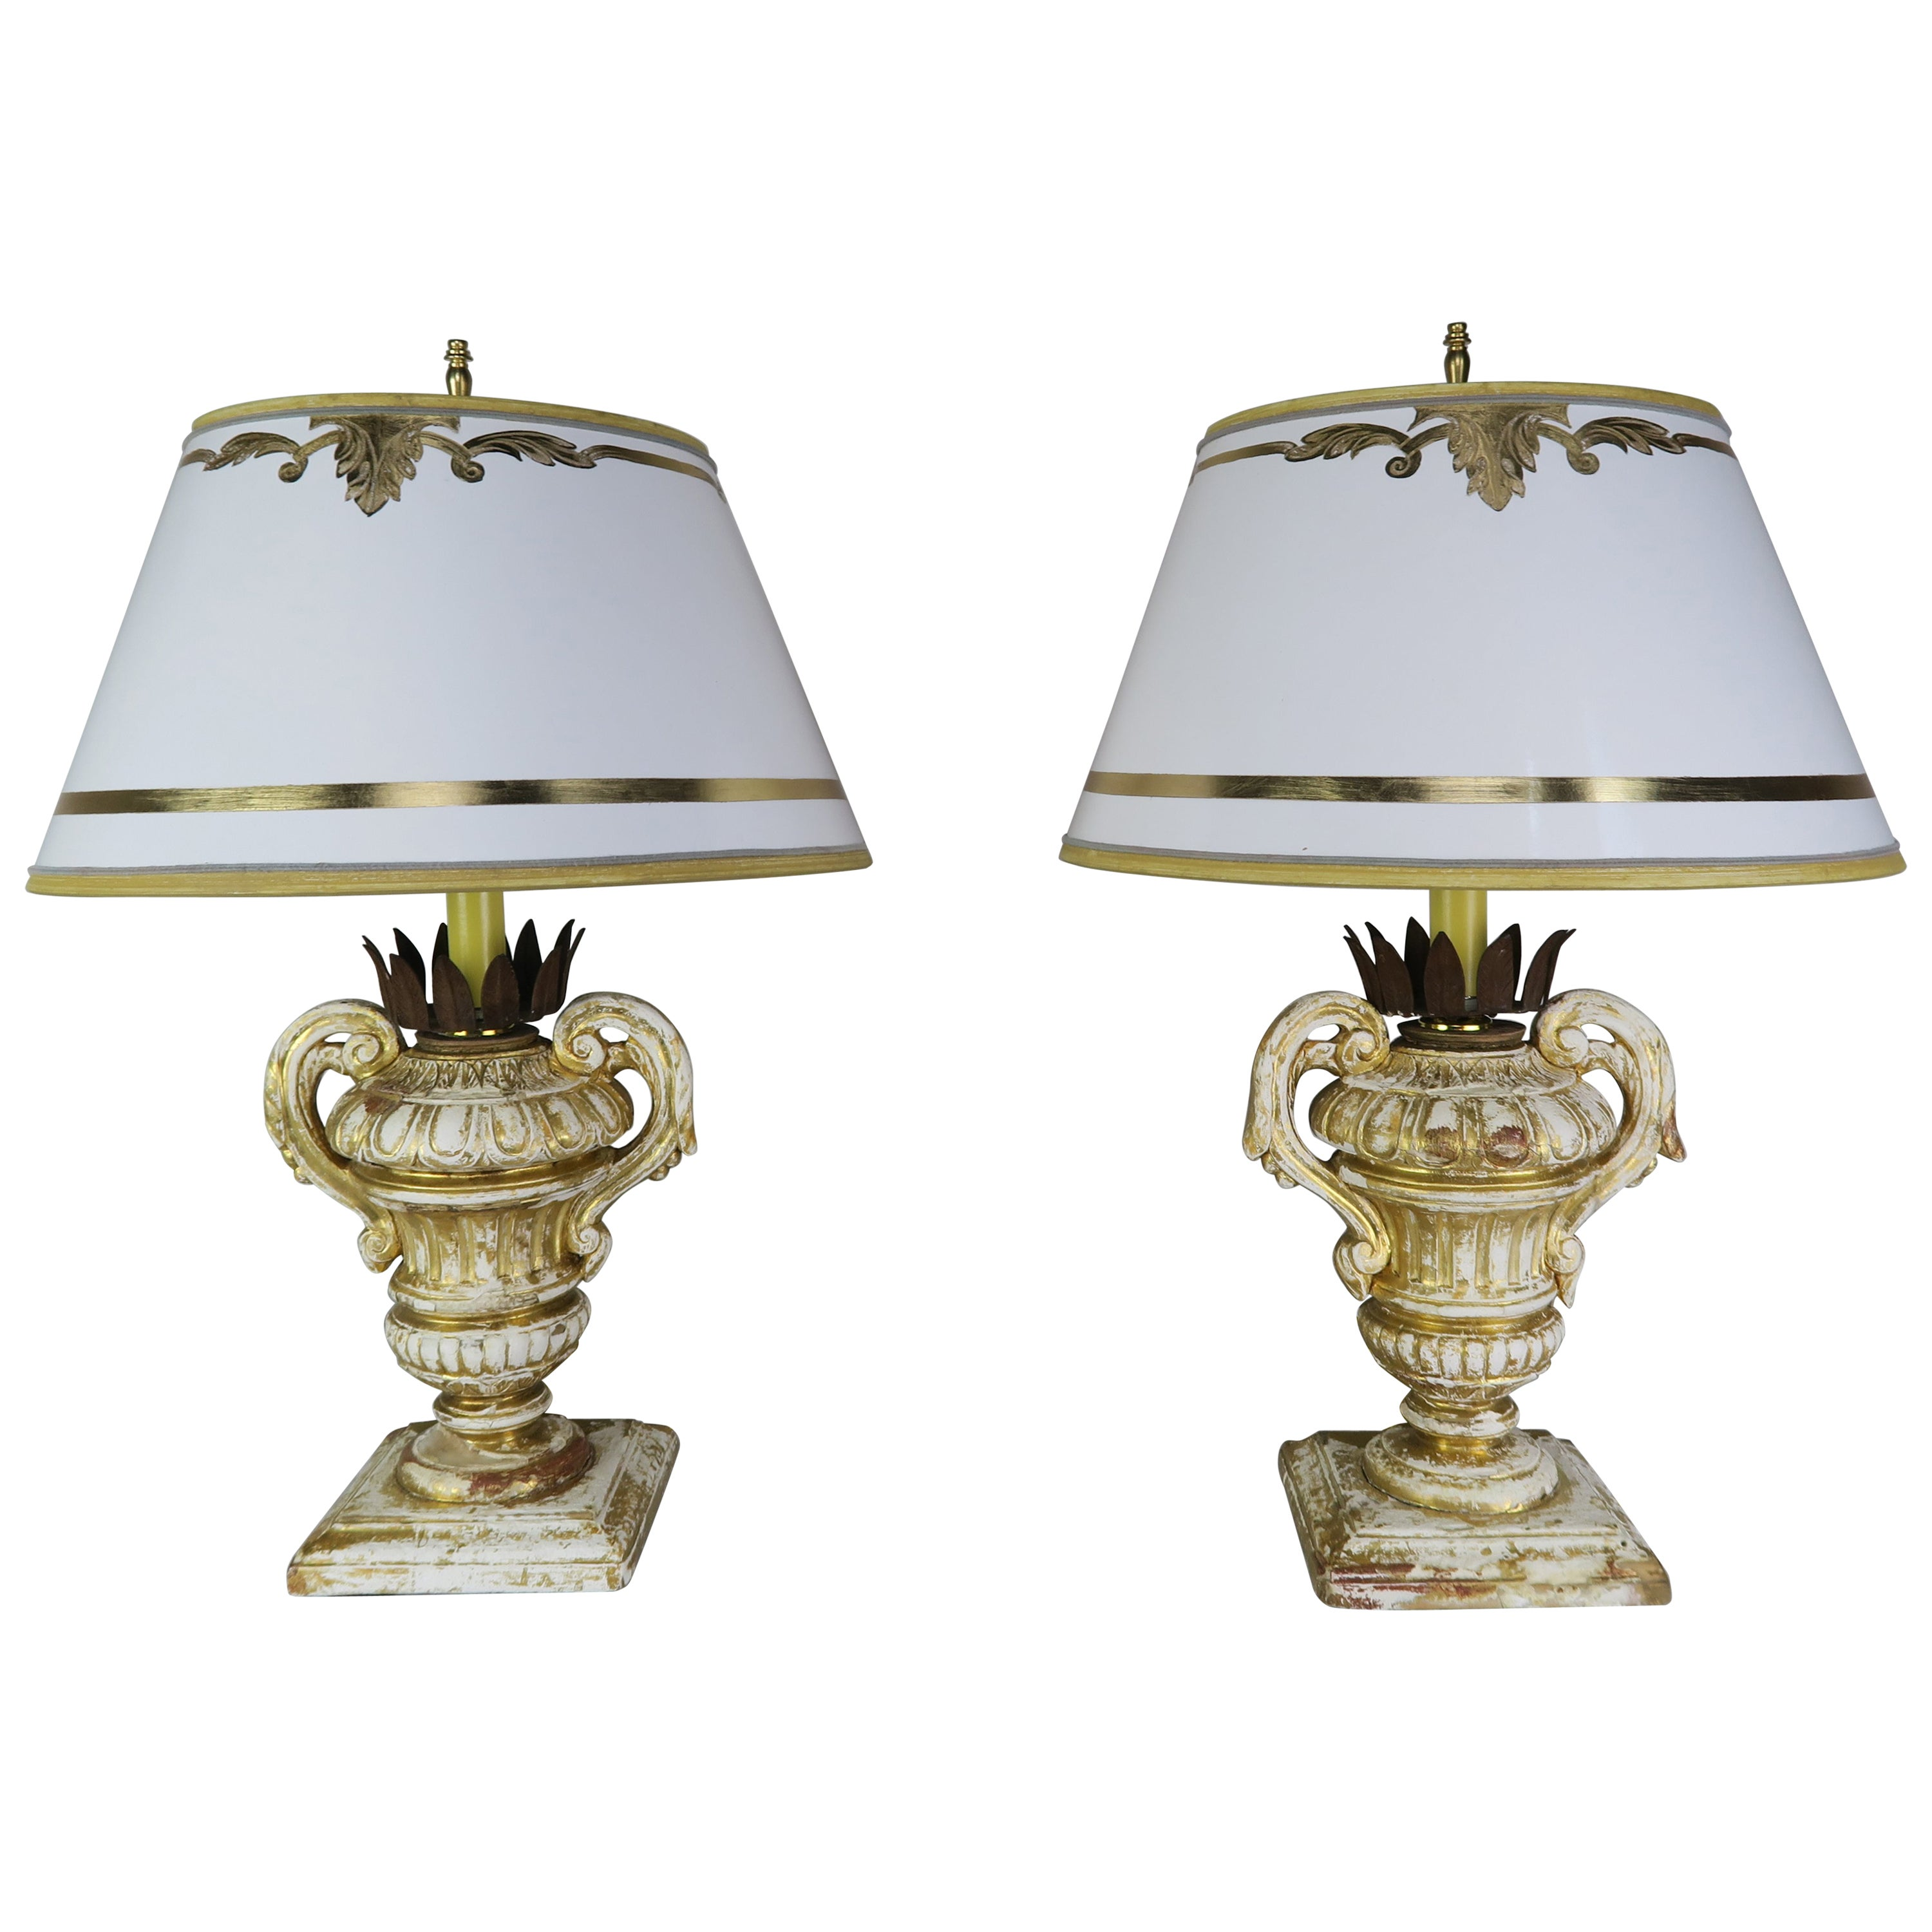 Pair or French Carved Urn Lamps with Parchment Shades